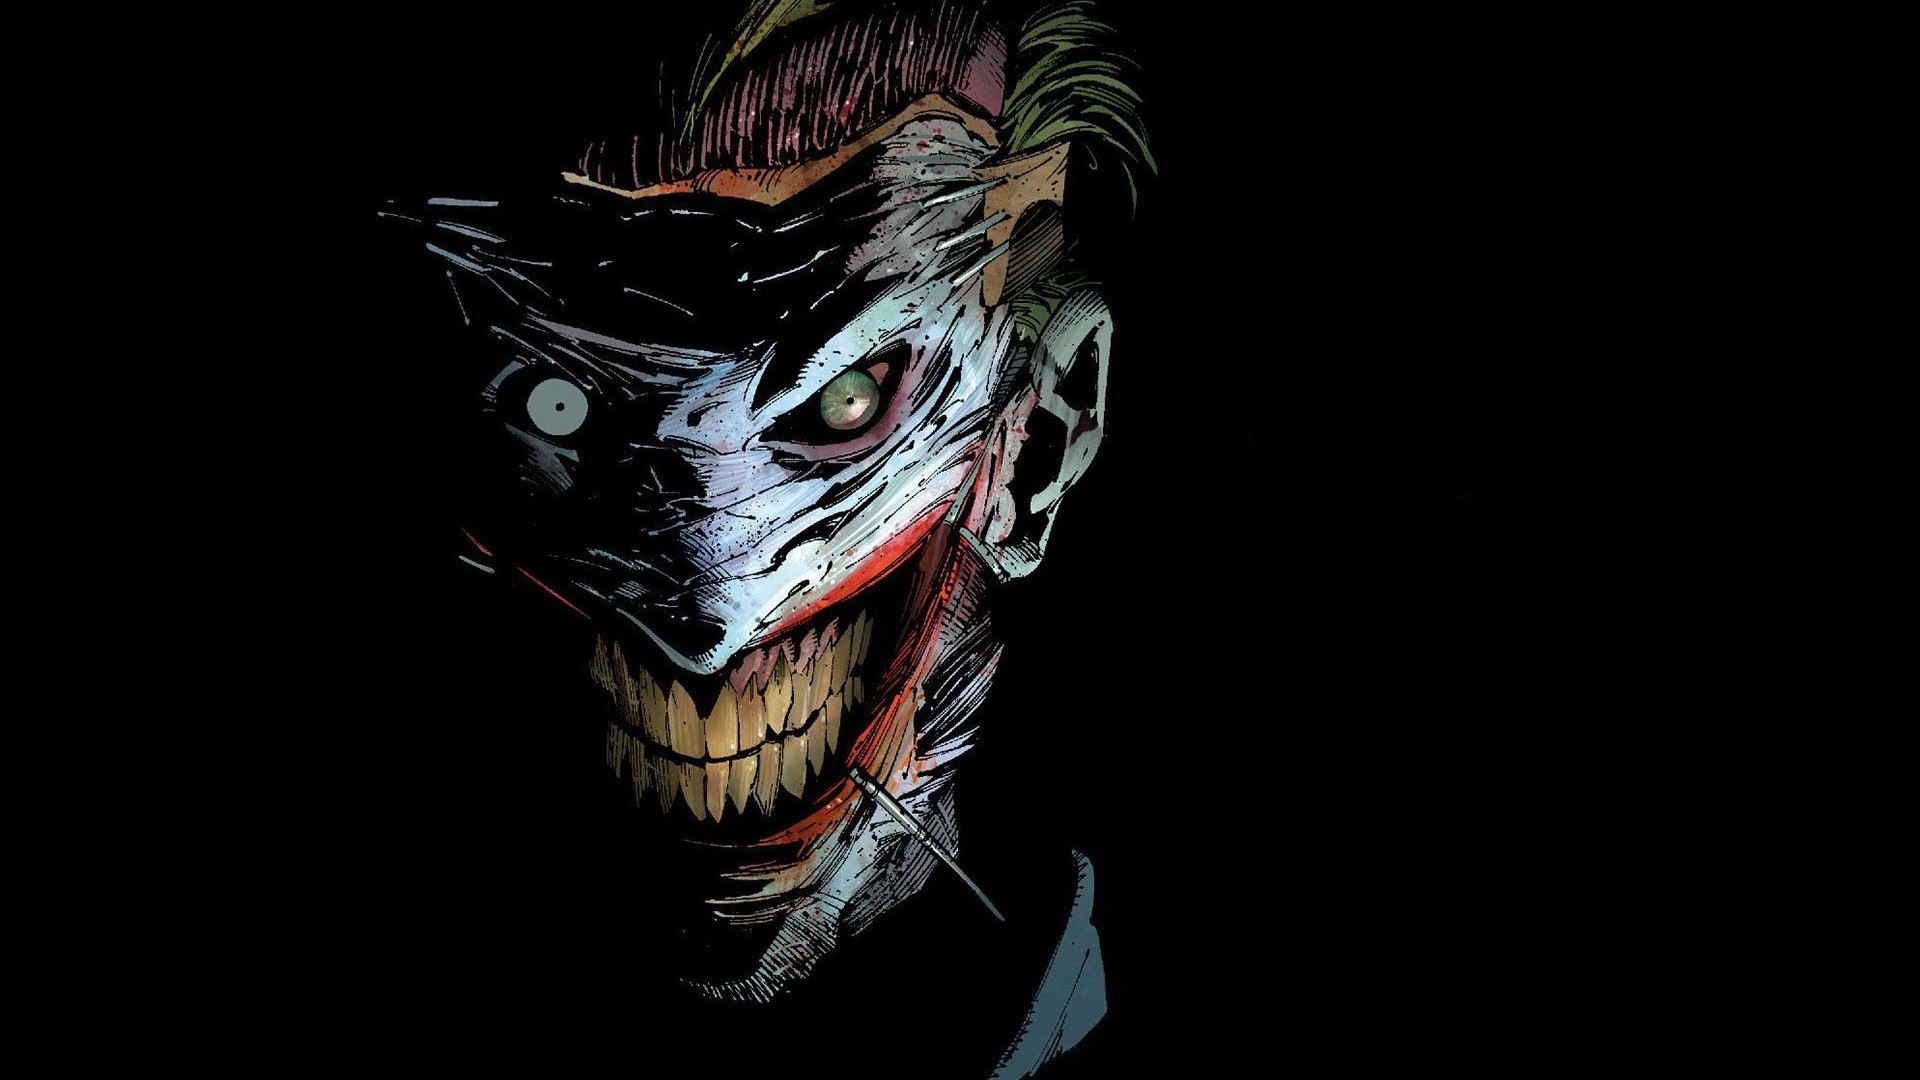 fav 0 rate 2 tweet 1920x1080 comics dc comics joker resolution 1920x1080